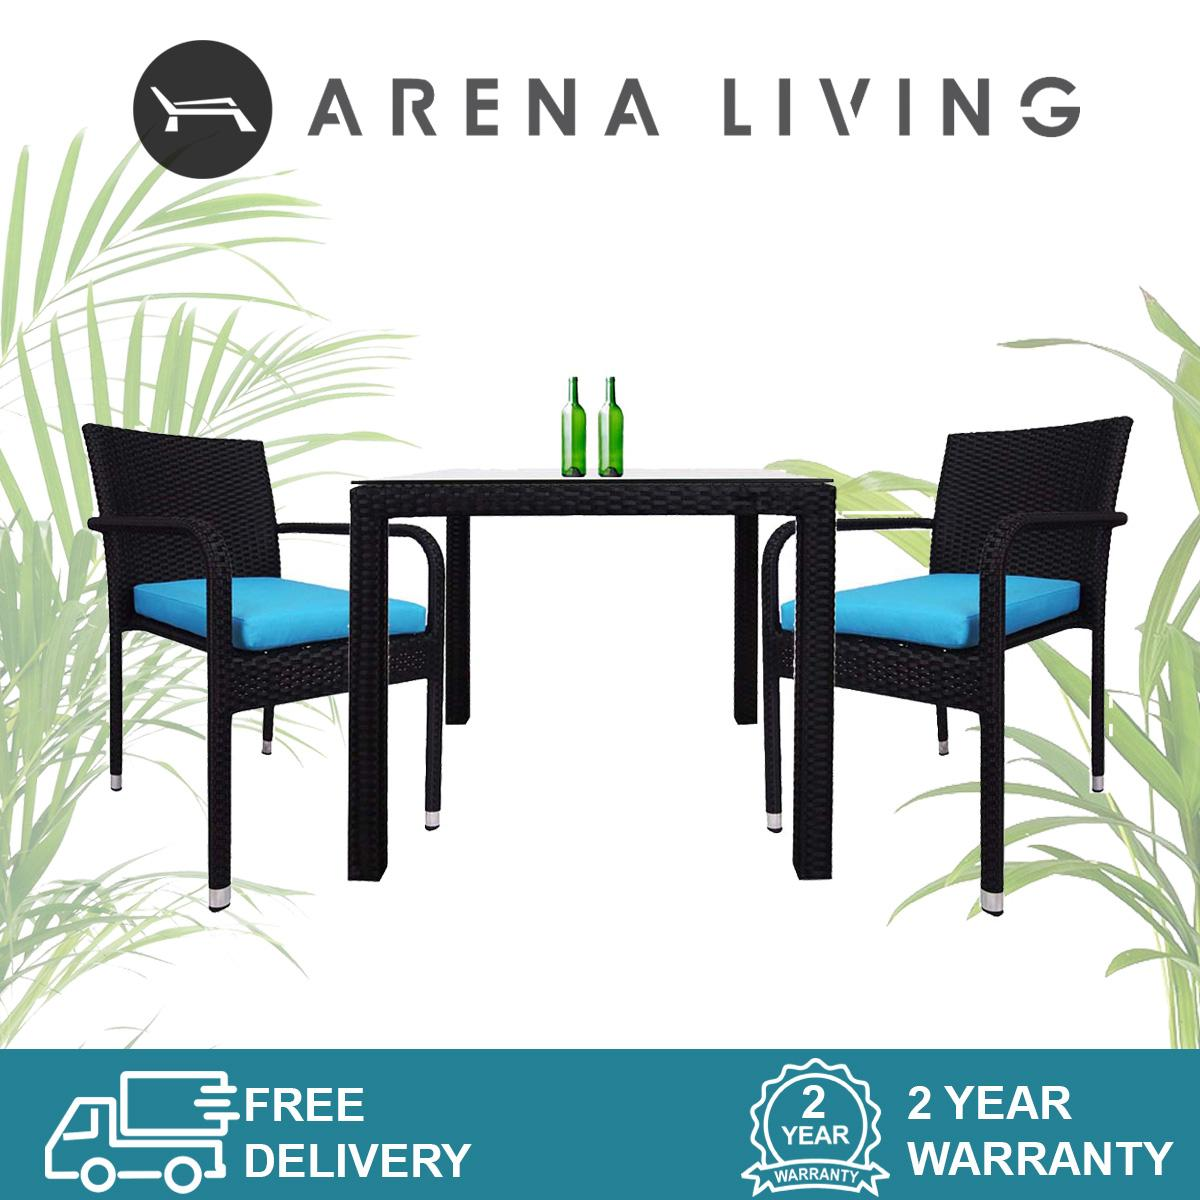 Palm 2 Chair Dining Set Blue Cushion, Outdoor Furniture by Arena Living